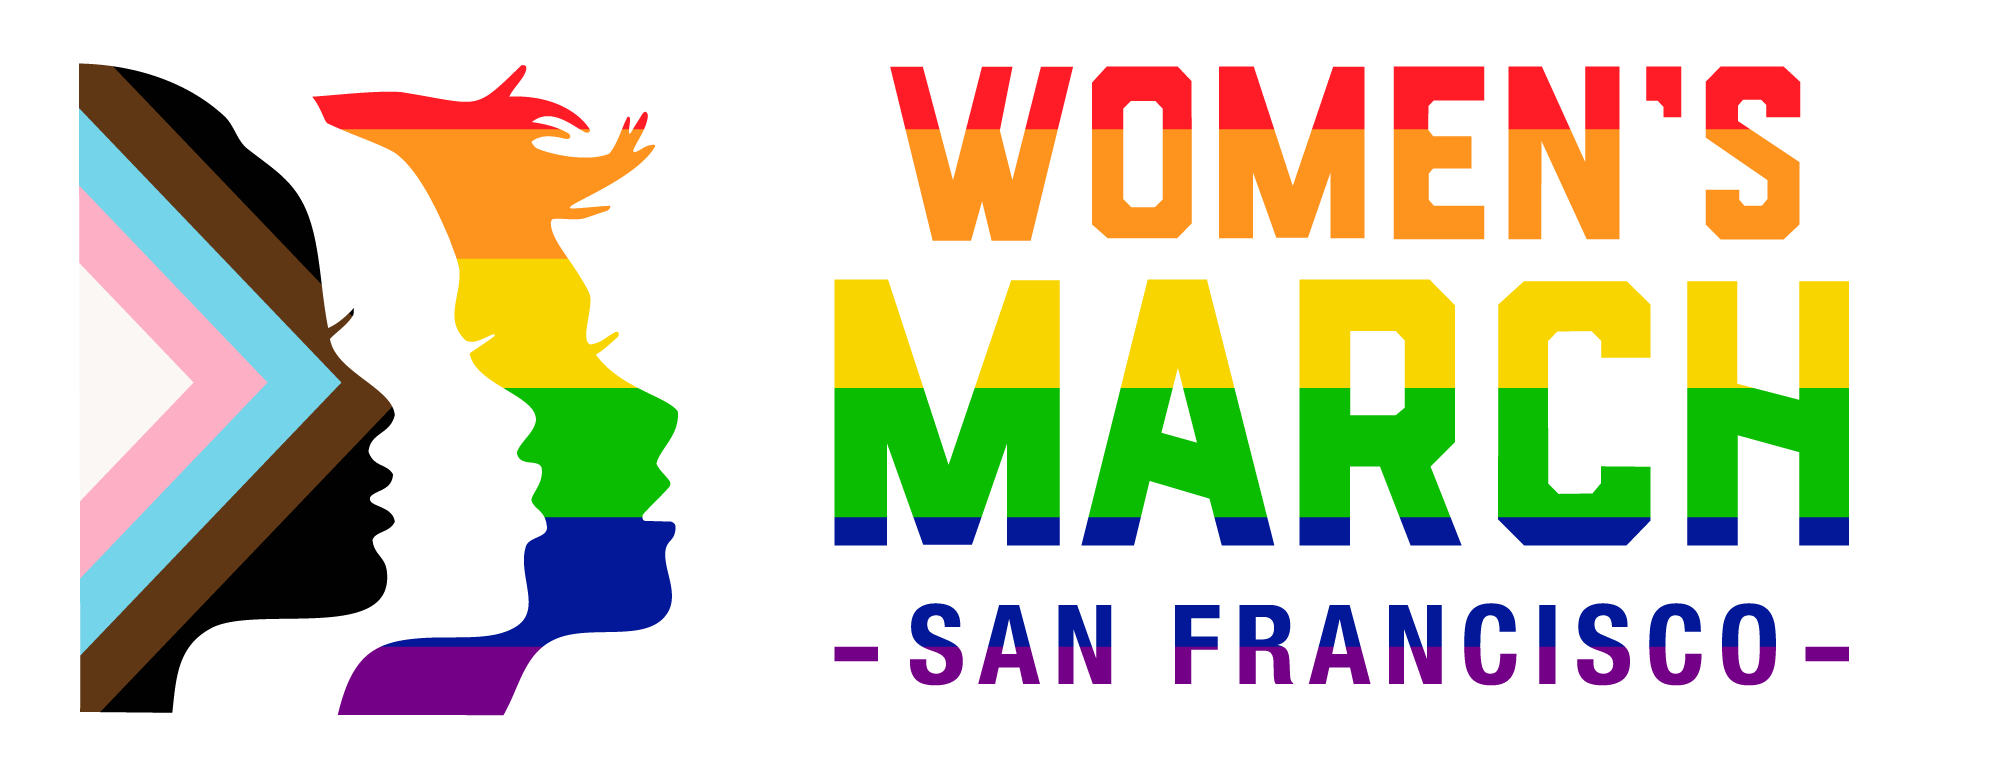 Women's March SF Pride Logo - Vertical